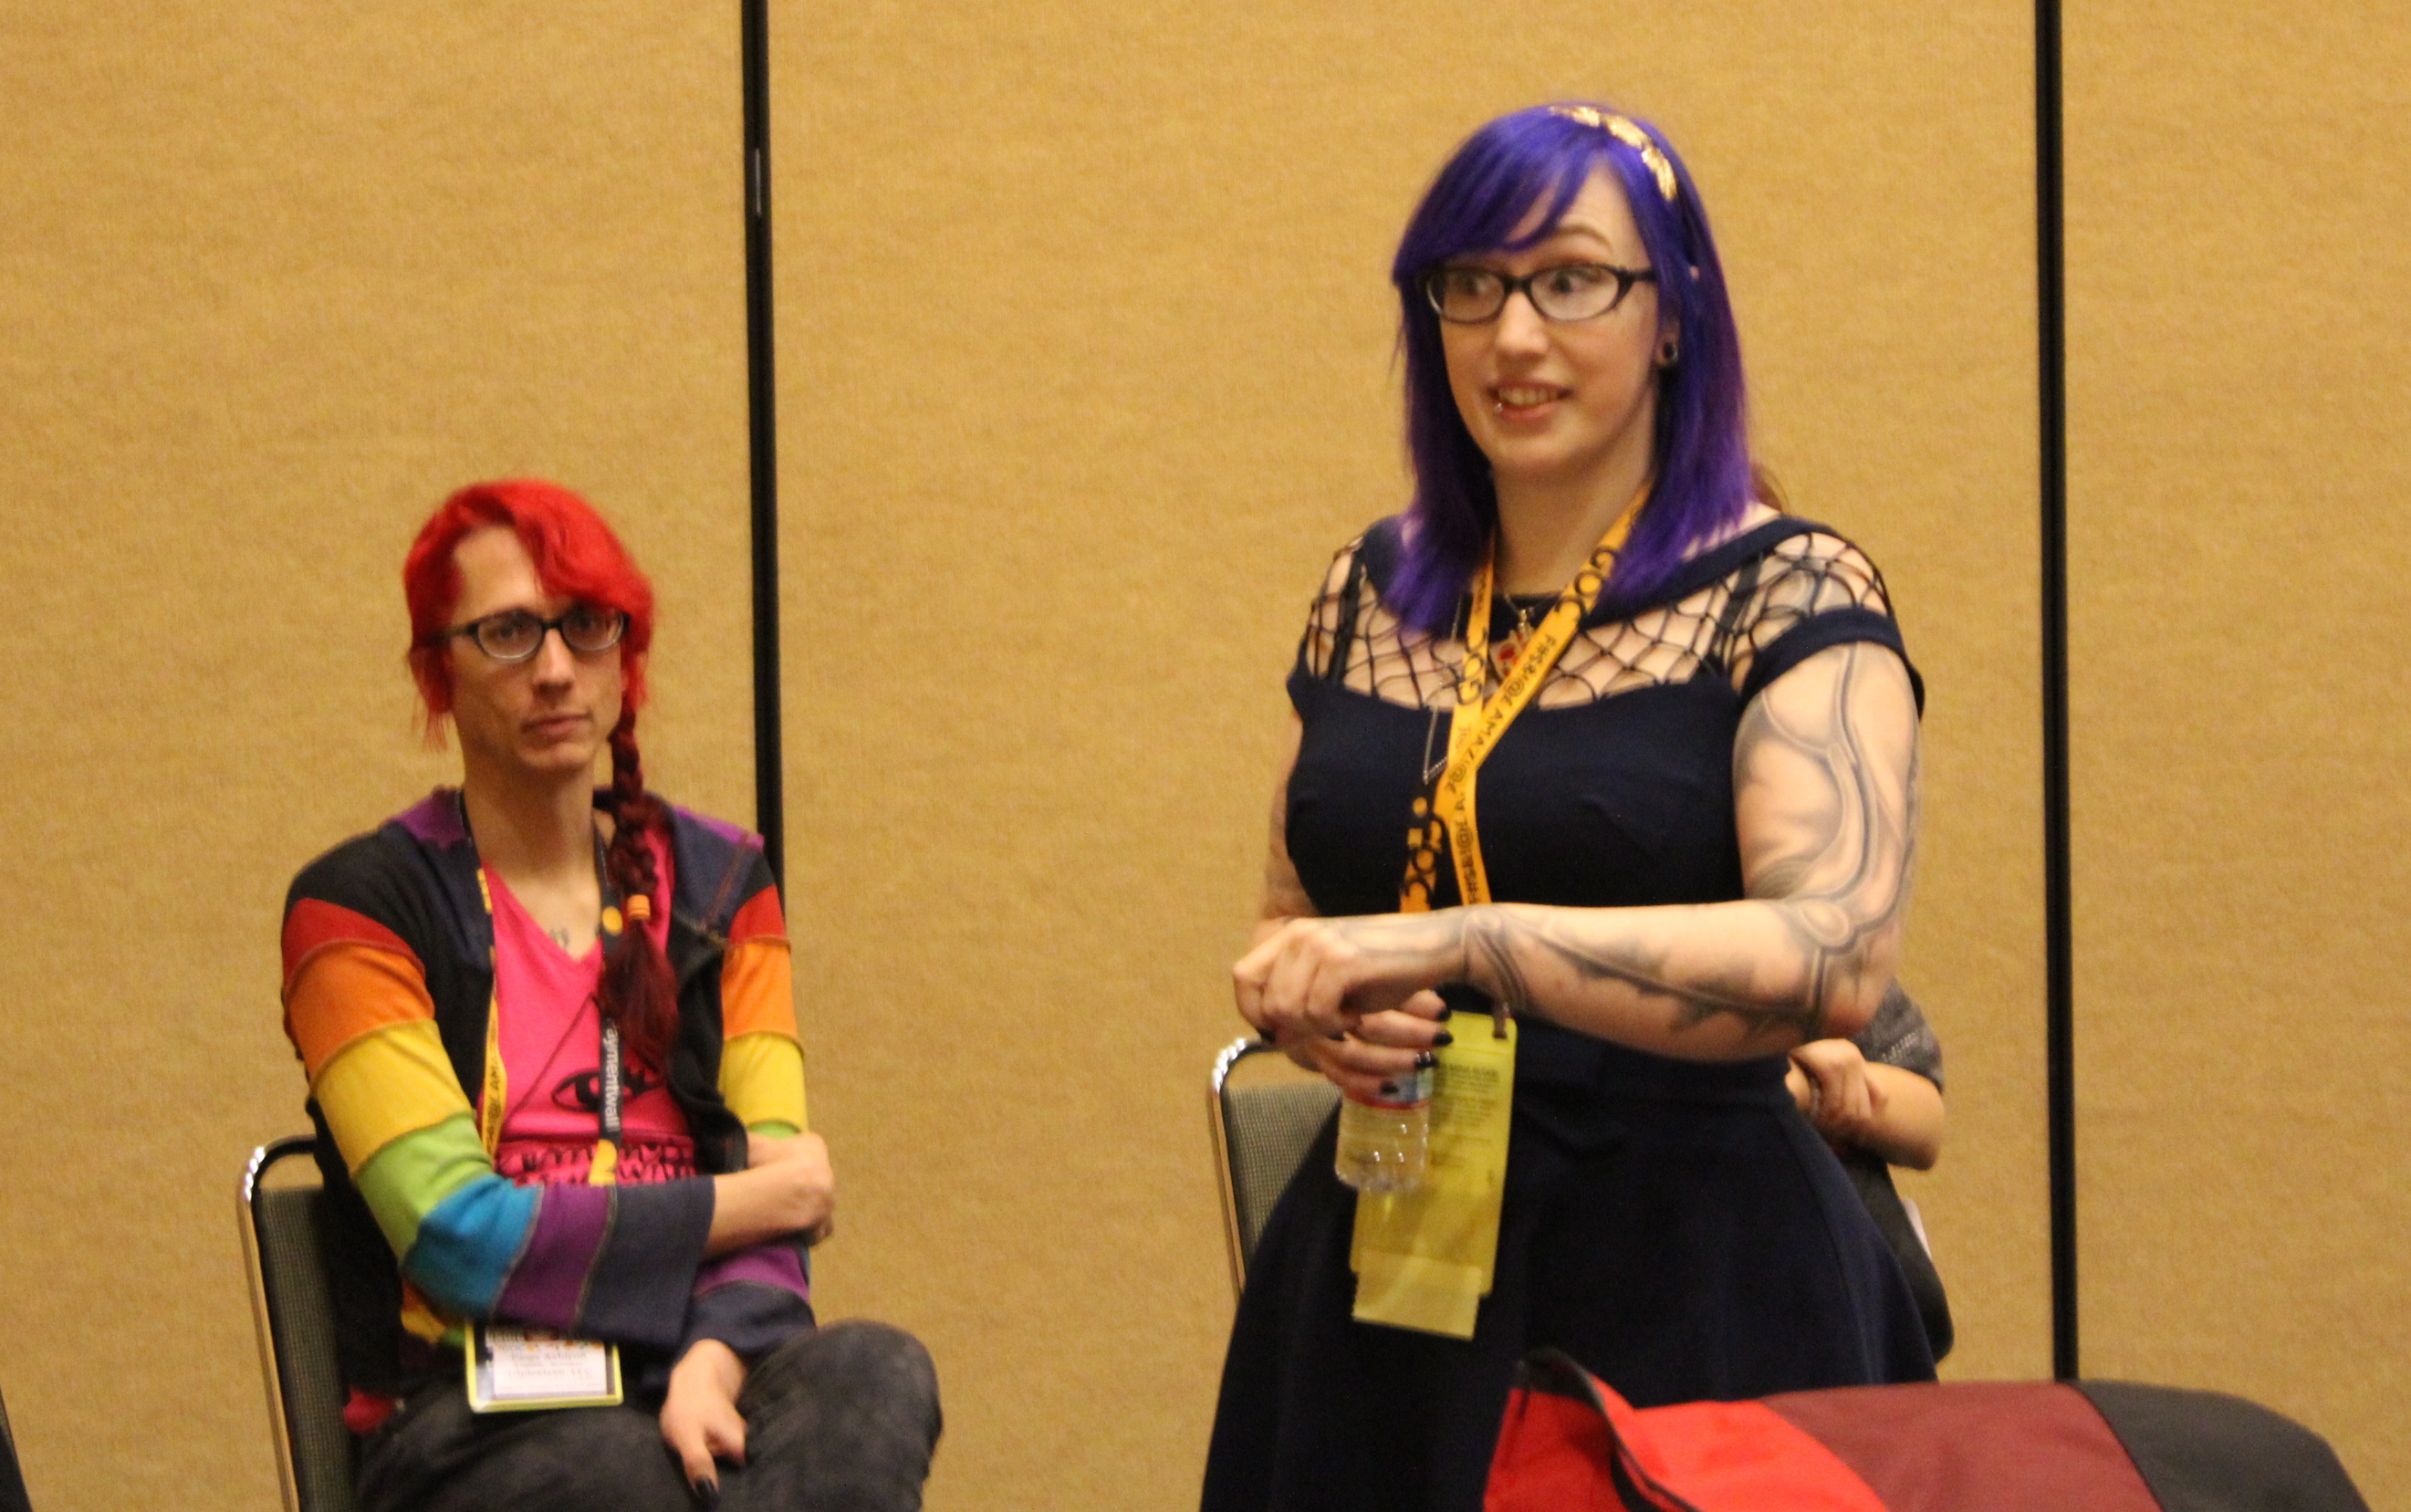 Zoe Quinn Comic Enlarge / Zoe Quinn Speaking